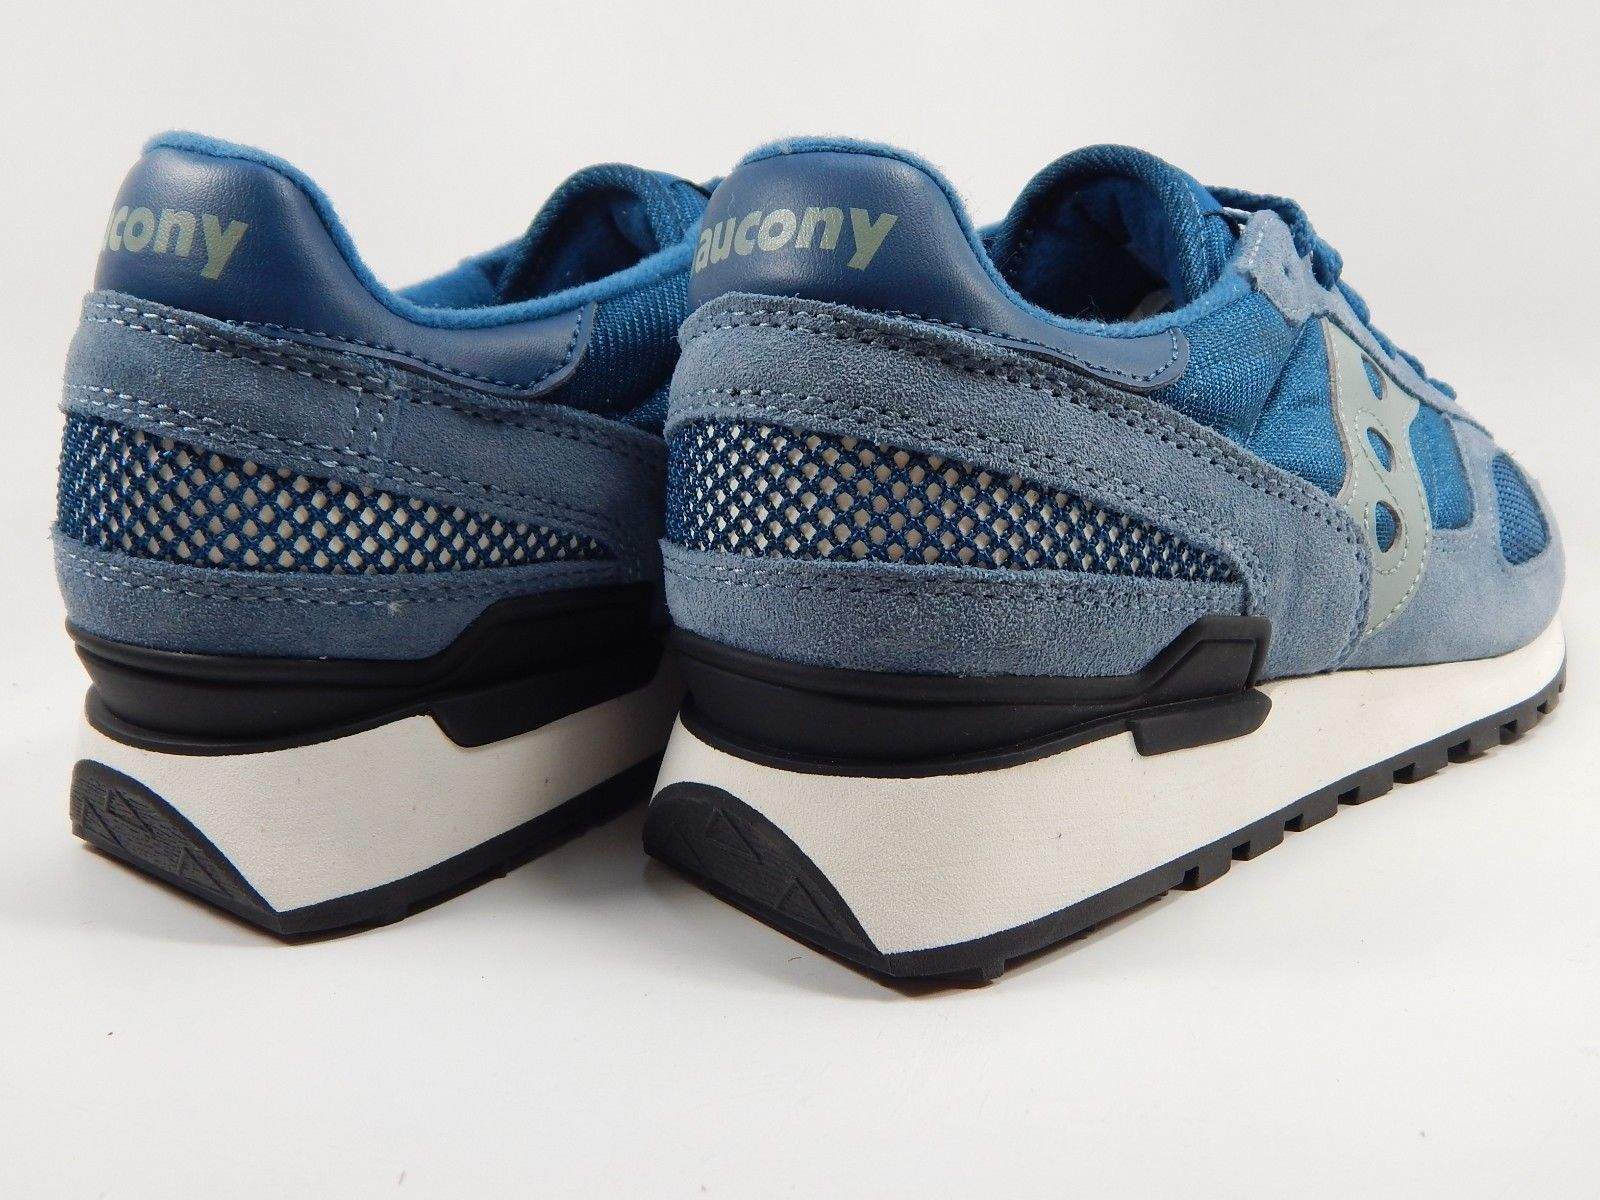 Saucony Shadow Original Men's Running Shoes Size US 9 M (D) EU 42.5 S2108-682